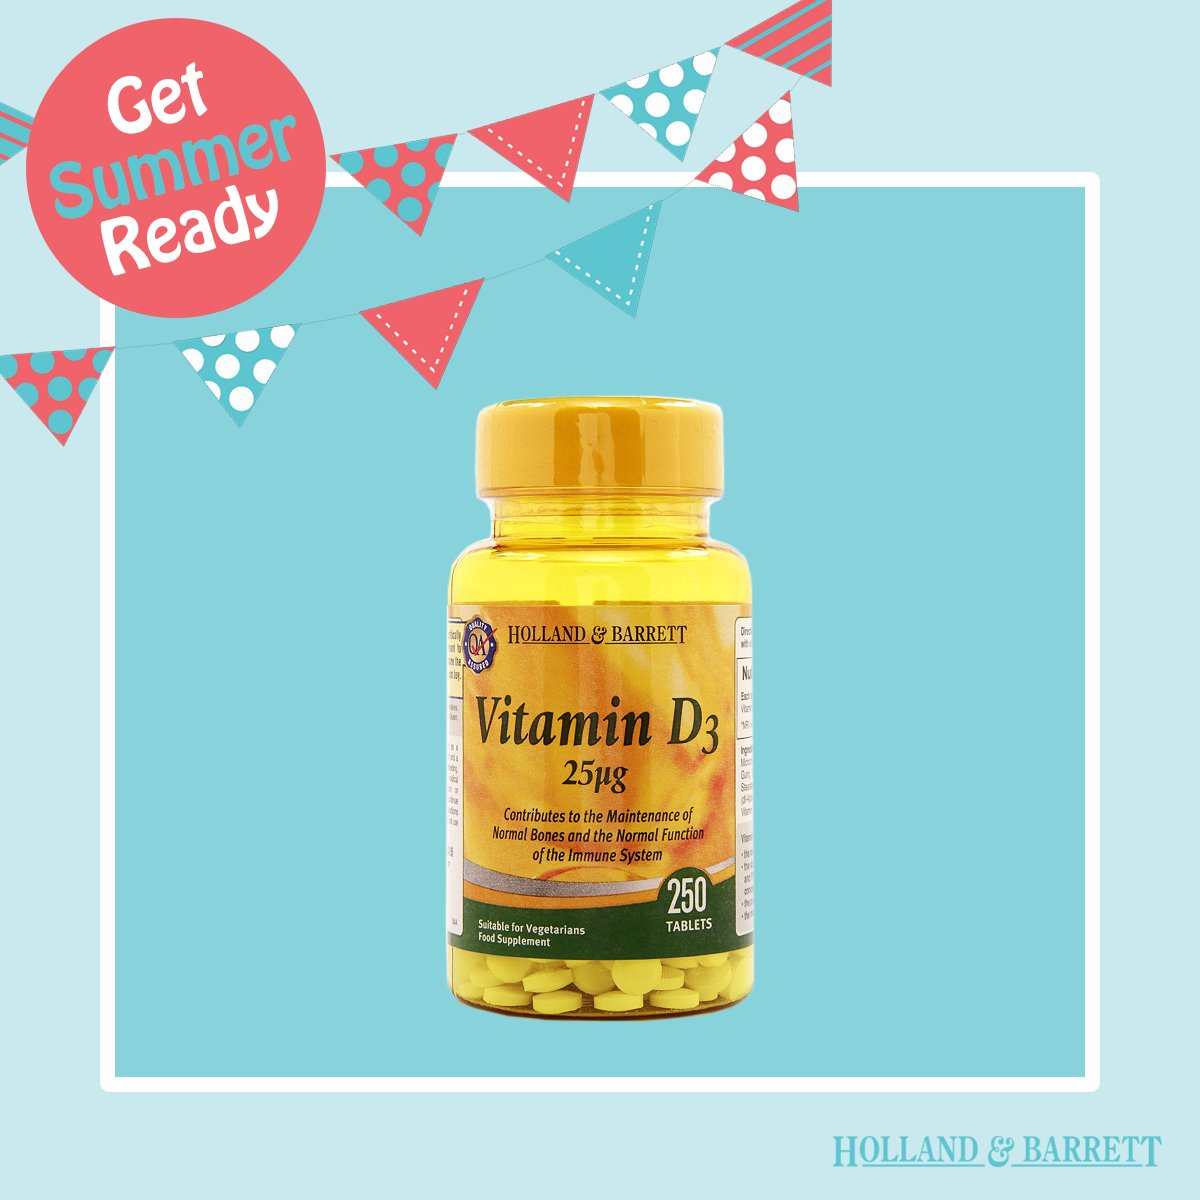 Make sure you're still getting your hit of Vit D while keeping protected from the sun! https://t.co/HDPOH1I9aD